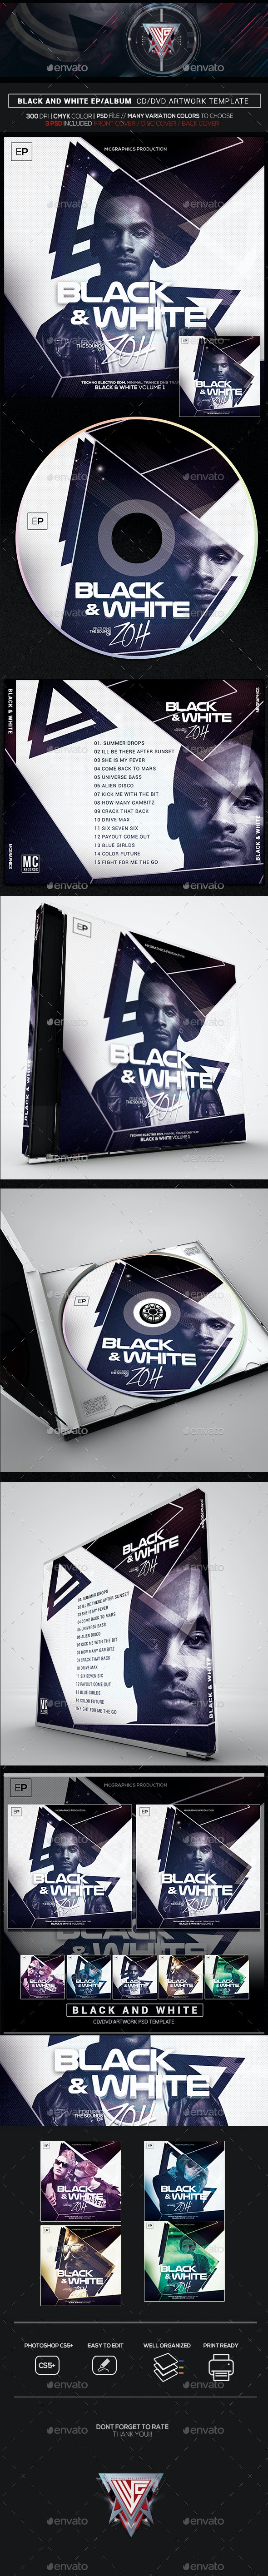 Guest DJ V10 Photoshop CD/DVD Template - CD & DVD Artwork Print Templates